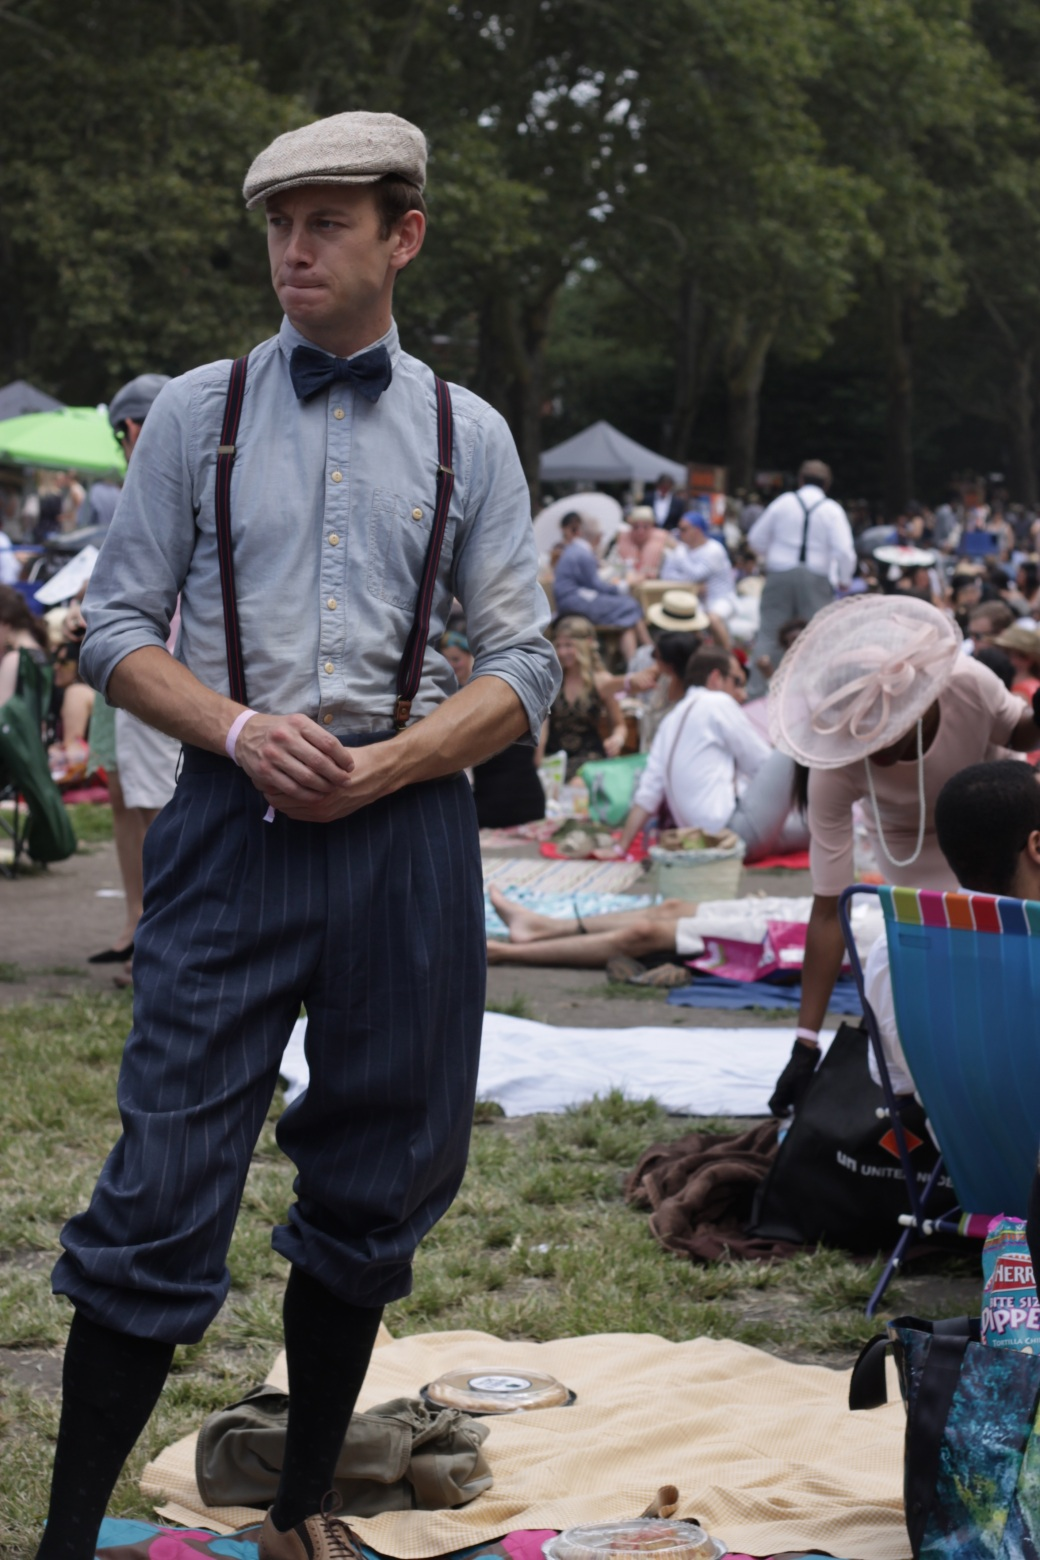 new york city governors island jazz age lawn party august 17 2014 103